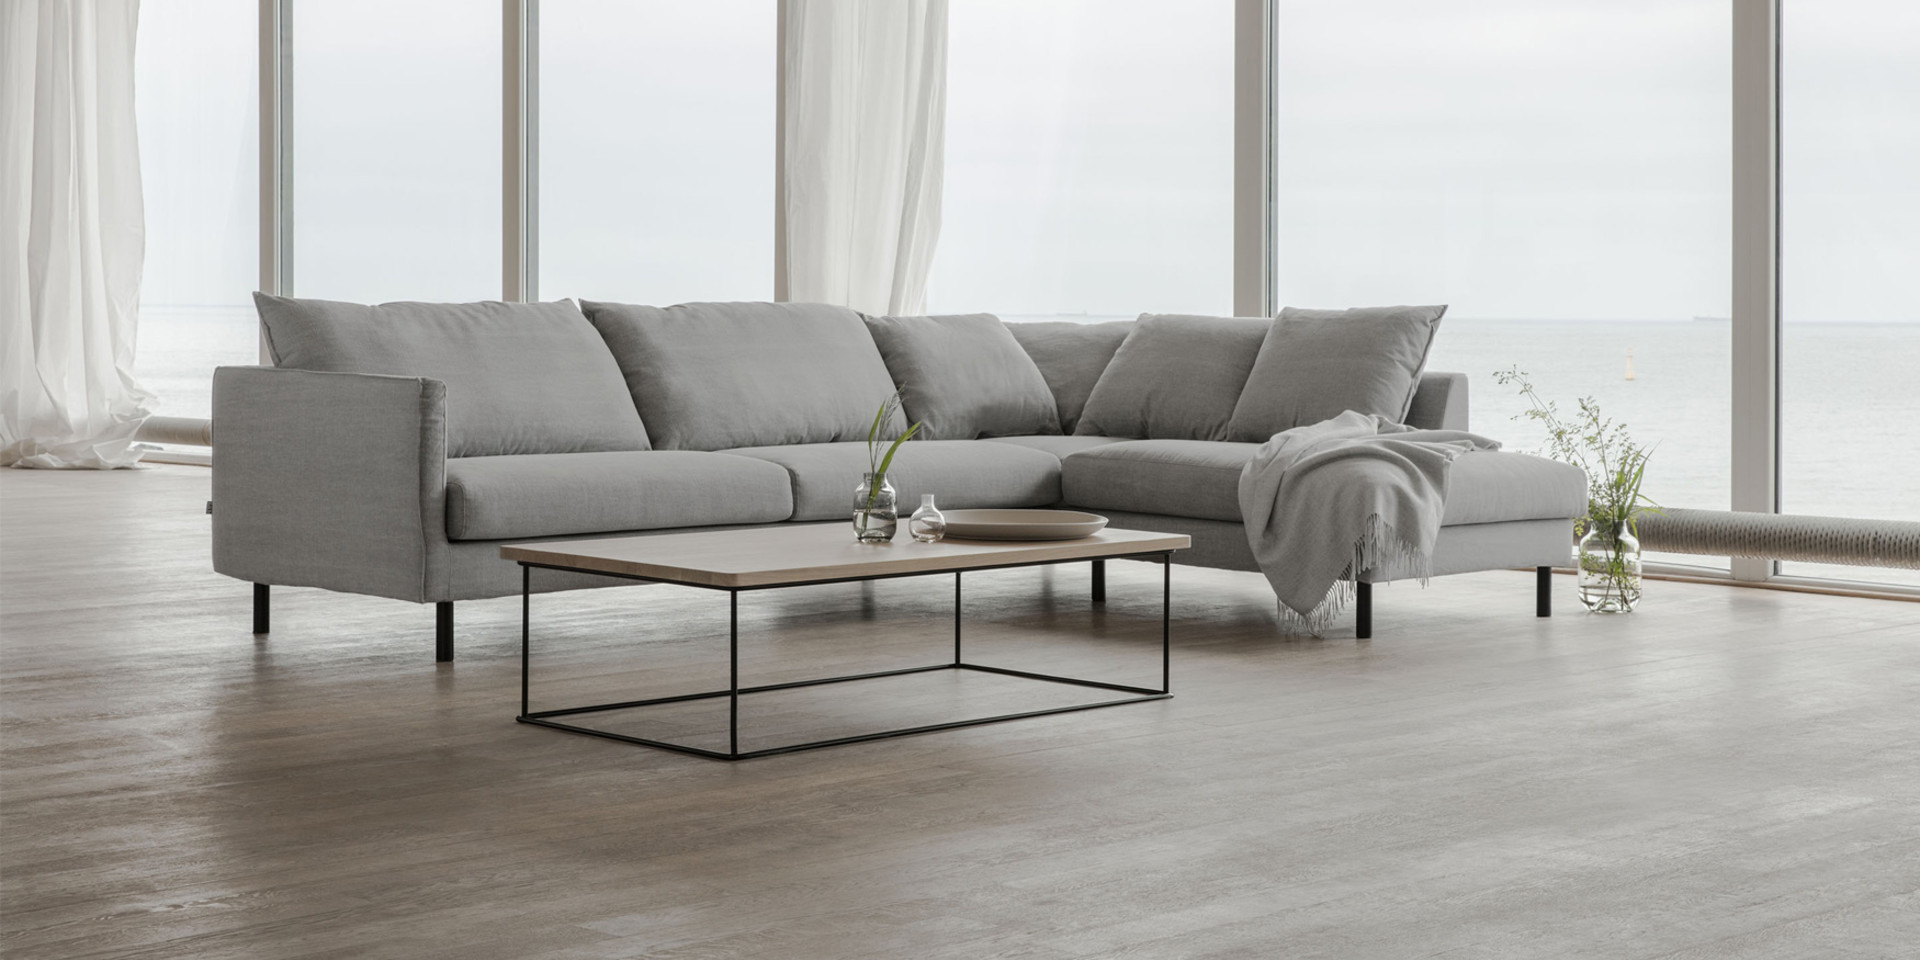 BIANCA_arrangement_set2_big_small_cushions_kiss4_light_grey_3